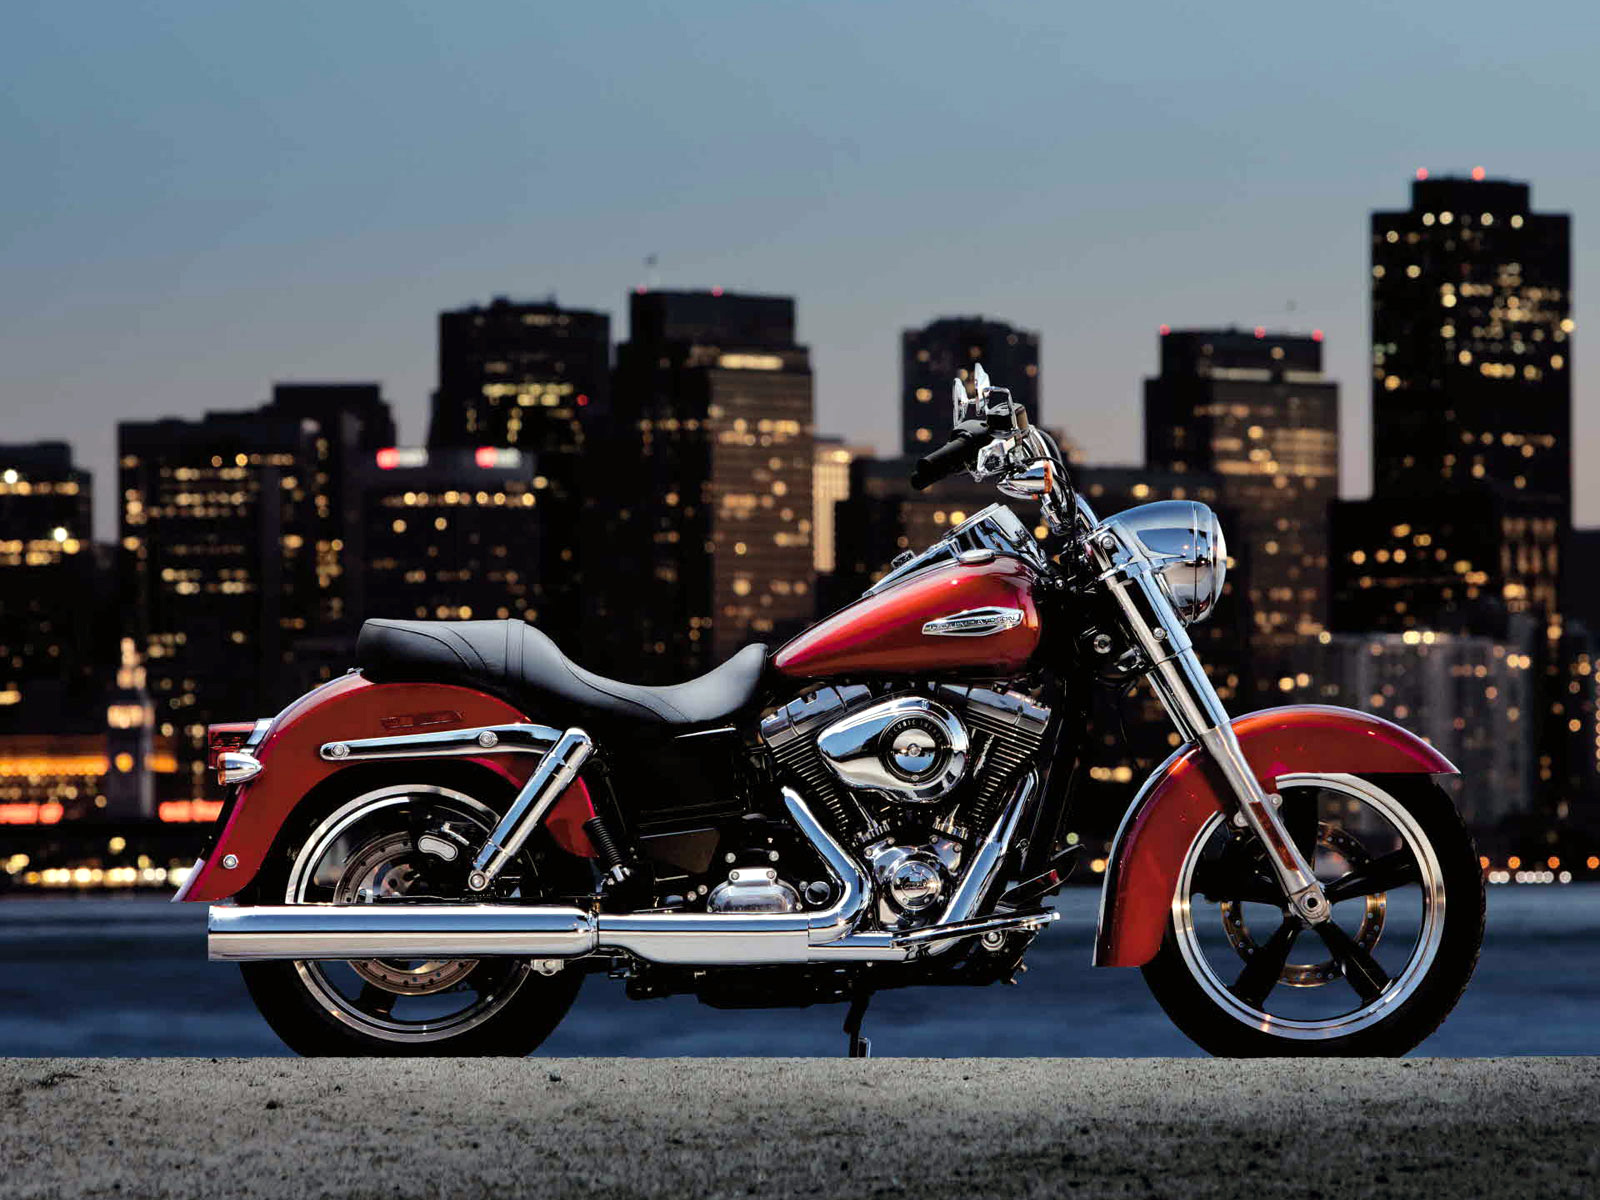 2012 Harley-Davidson FLD Dyna Switchback Wallpaper